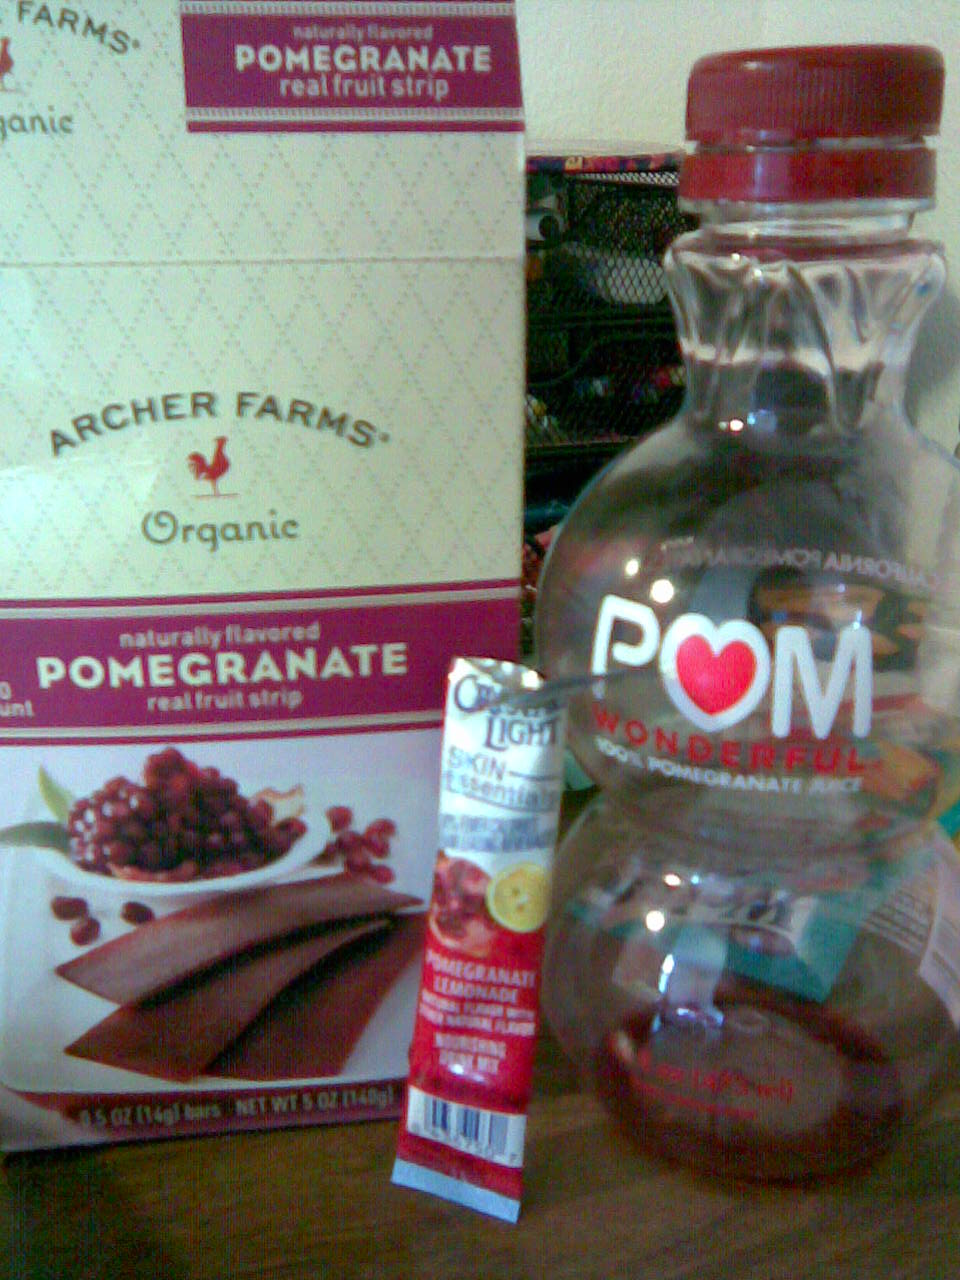 My little shrine of pomegranate food items.